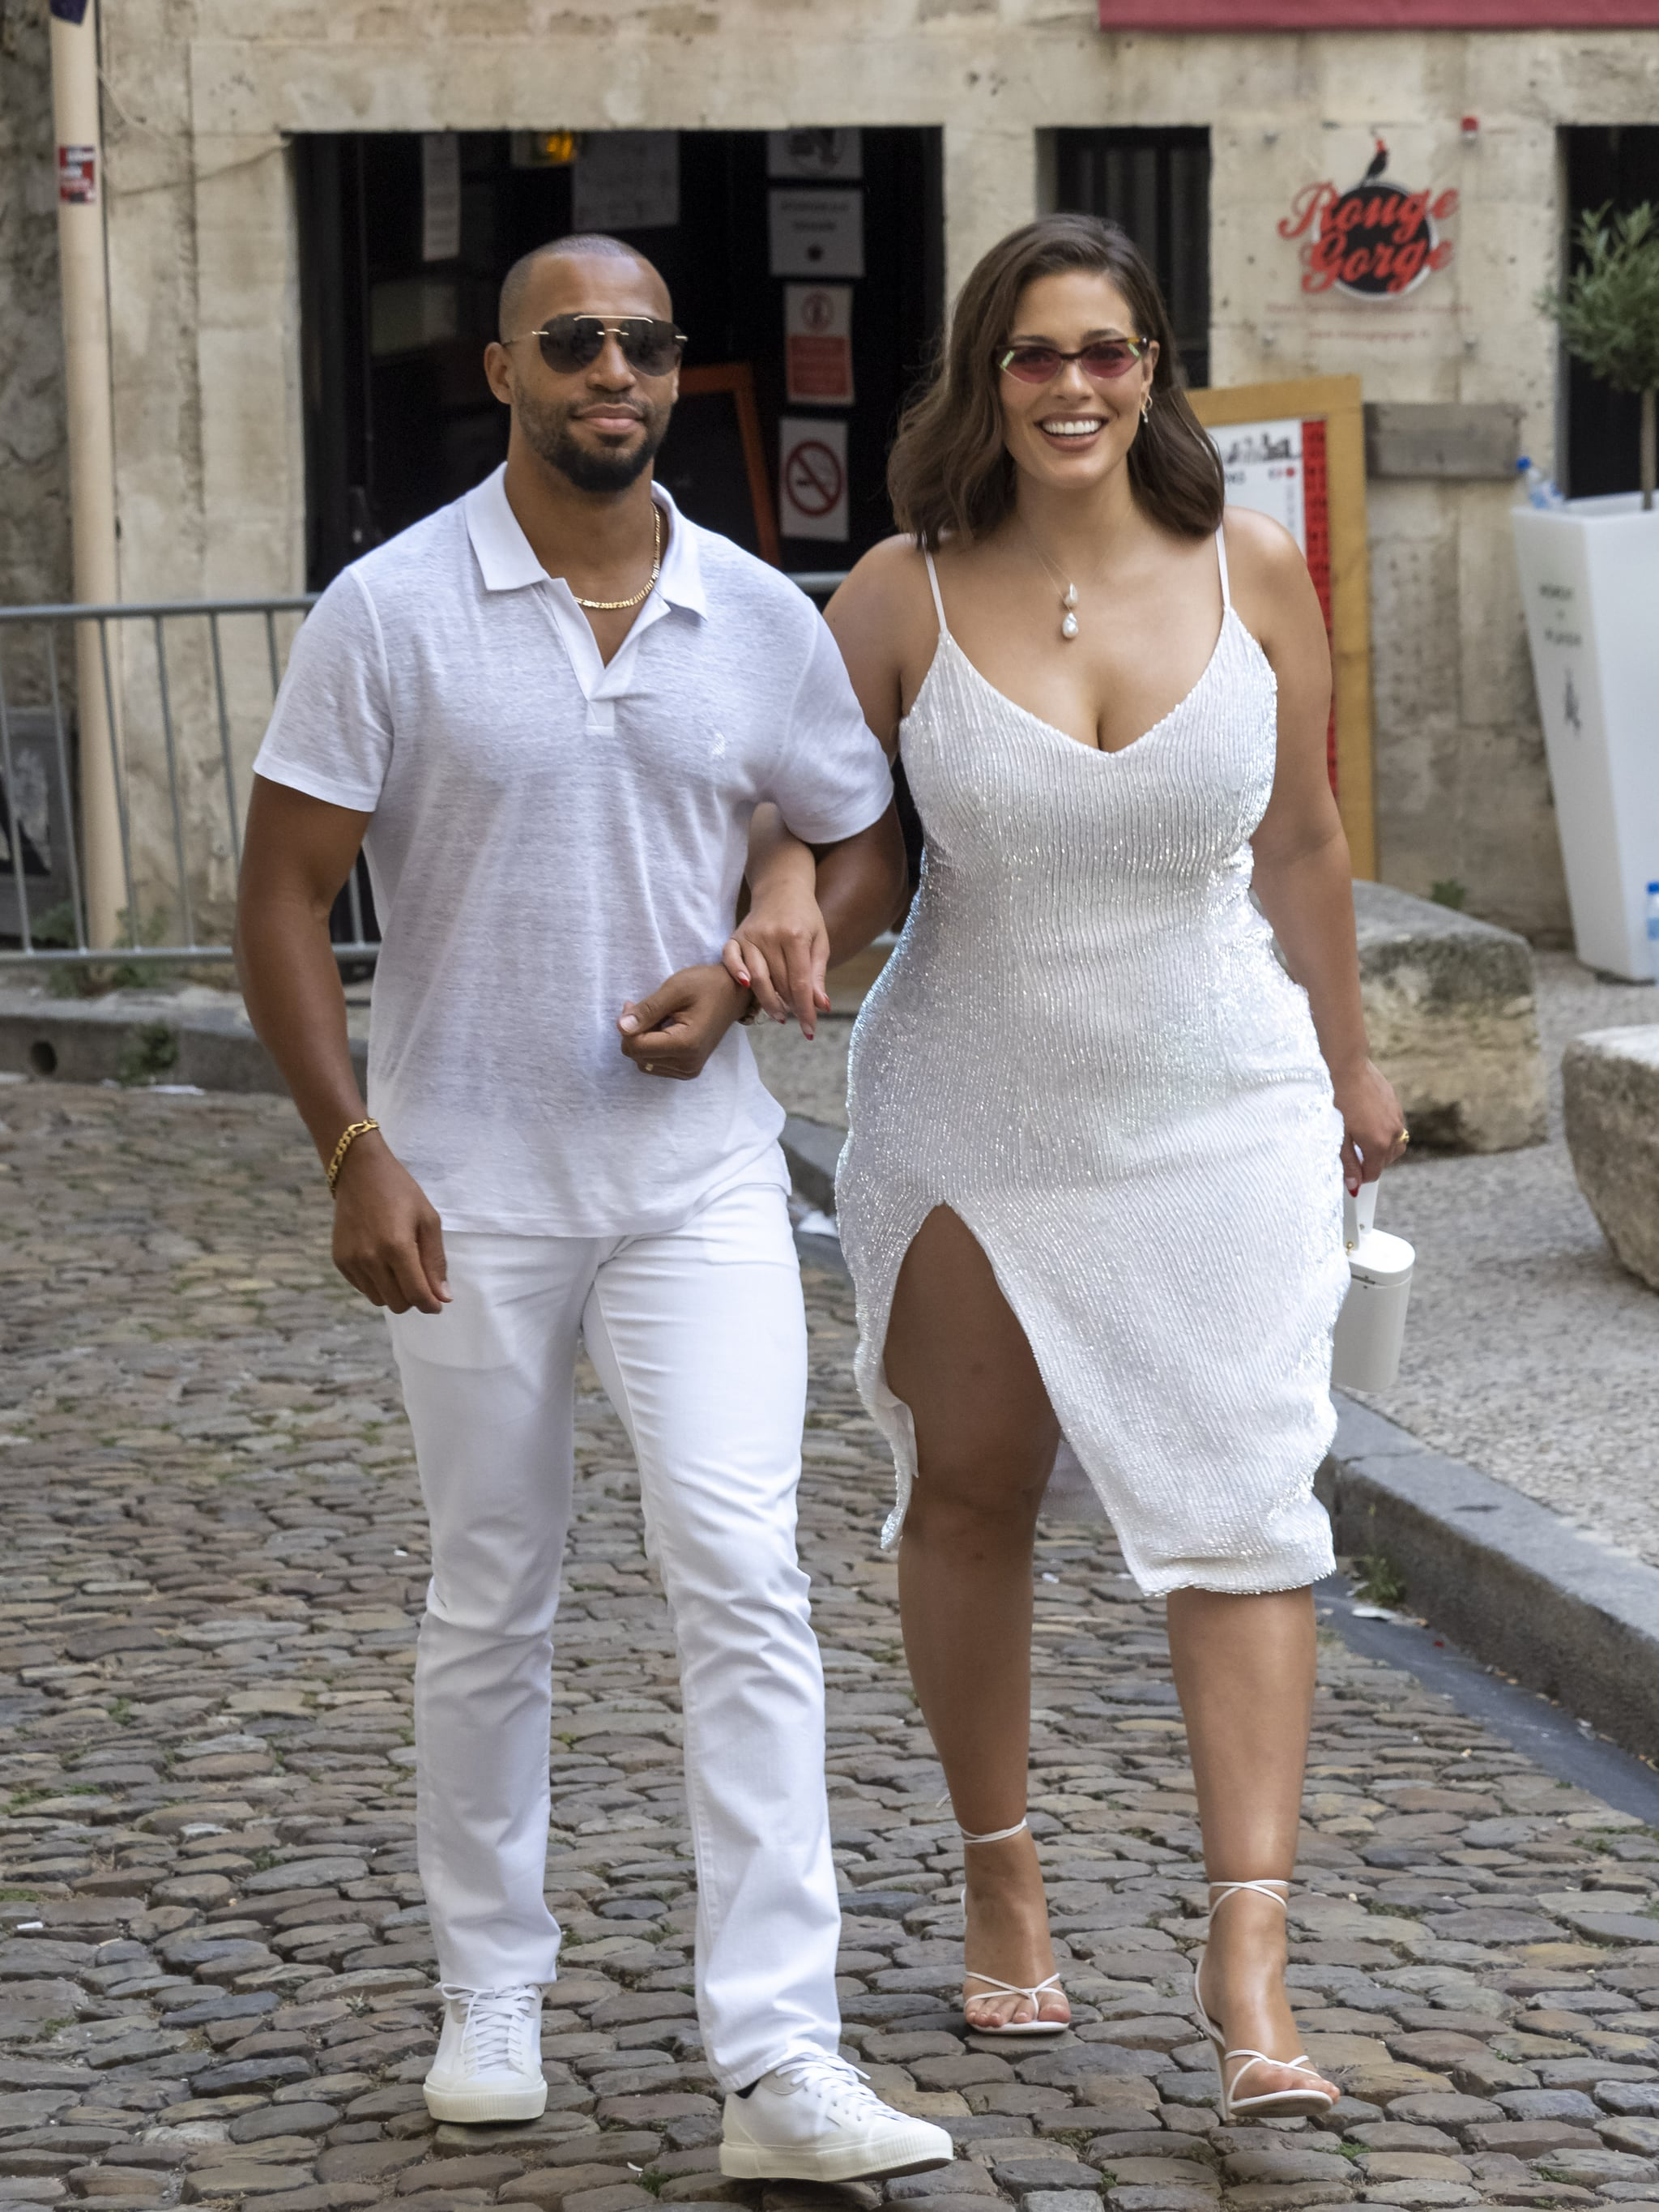 Ashley Graham Wedding.Ashley Graham And Justin Ervin At Joe Jonas And Sophie